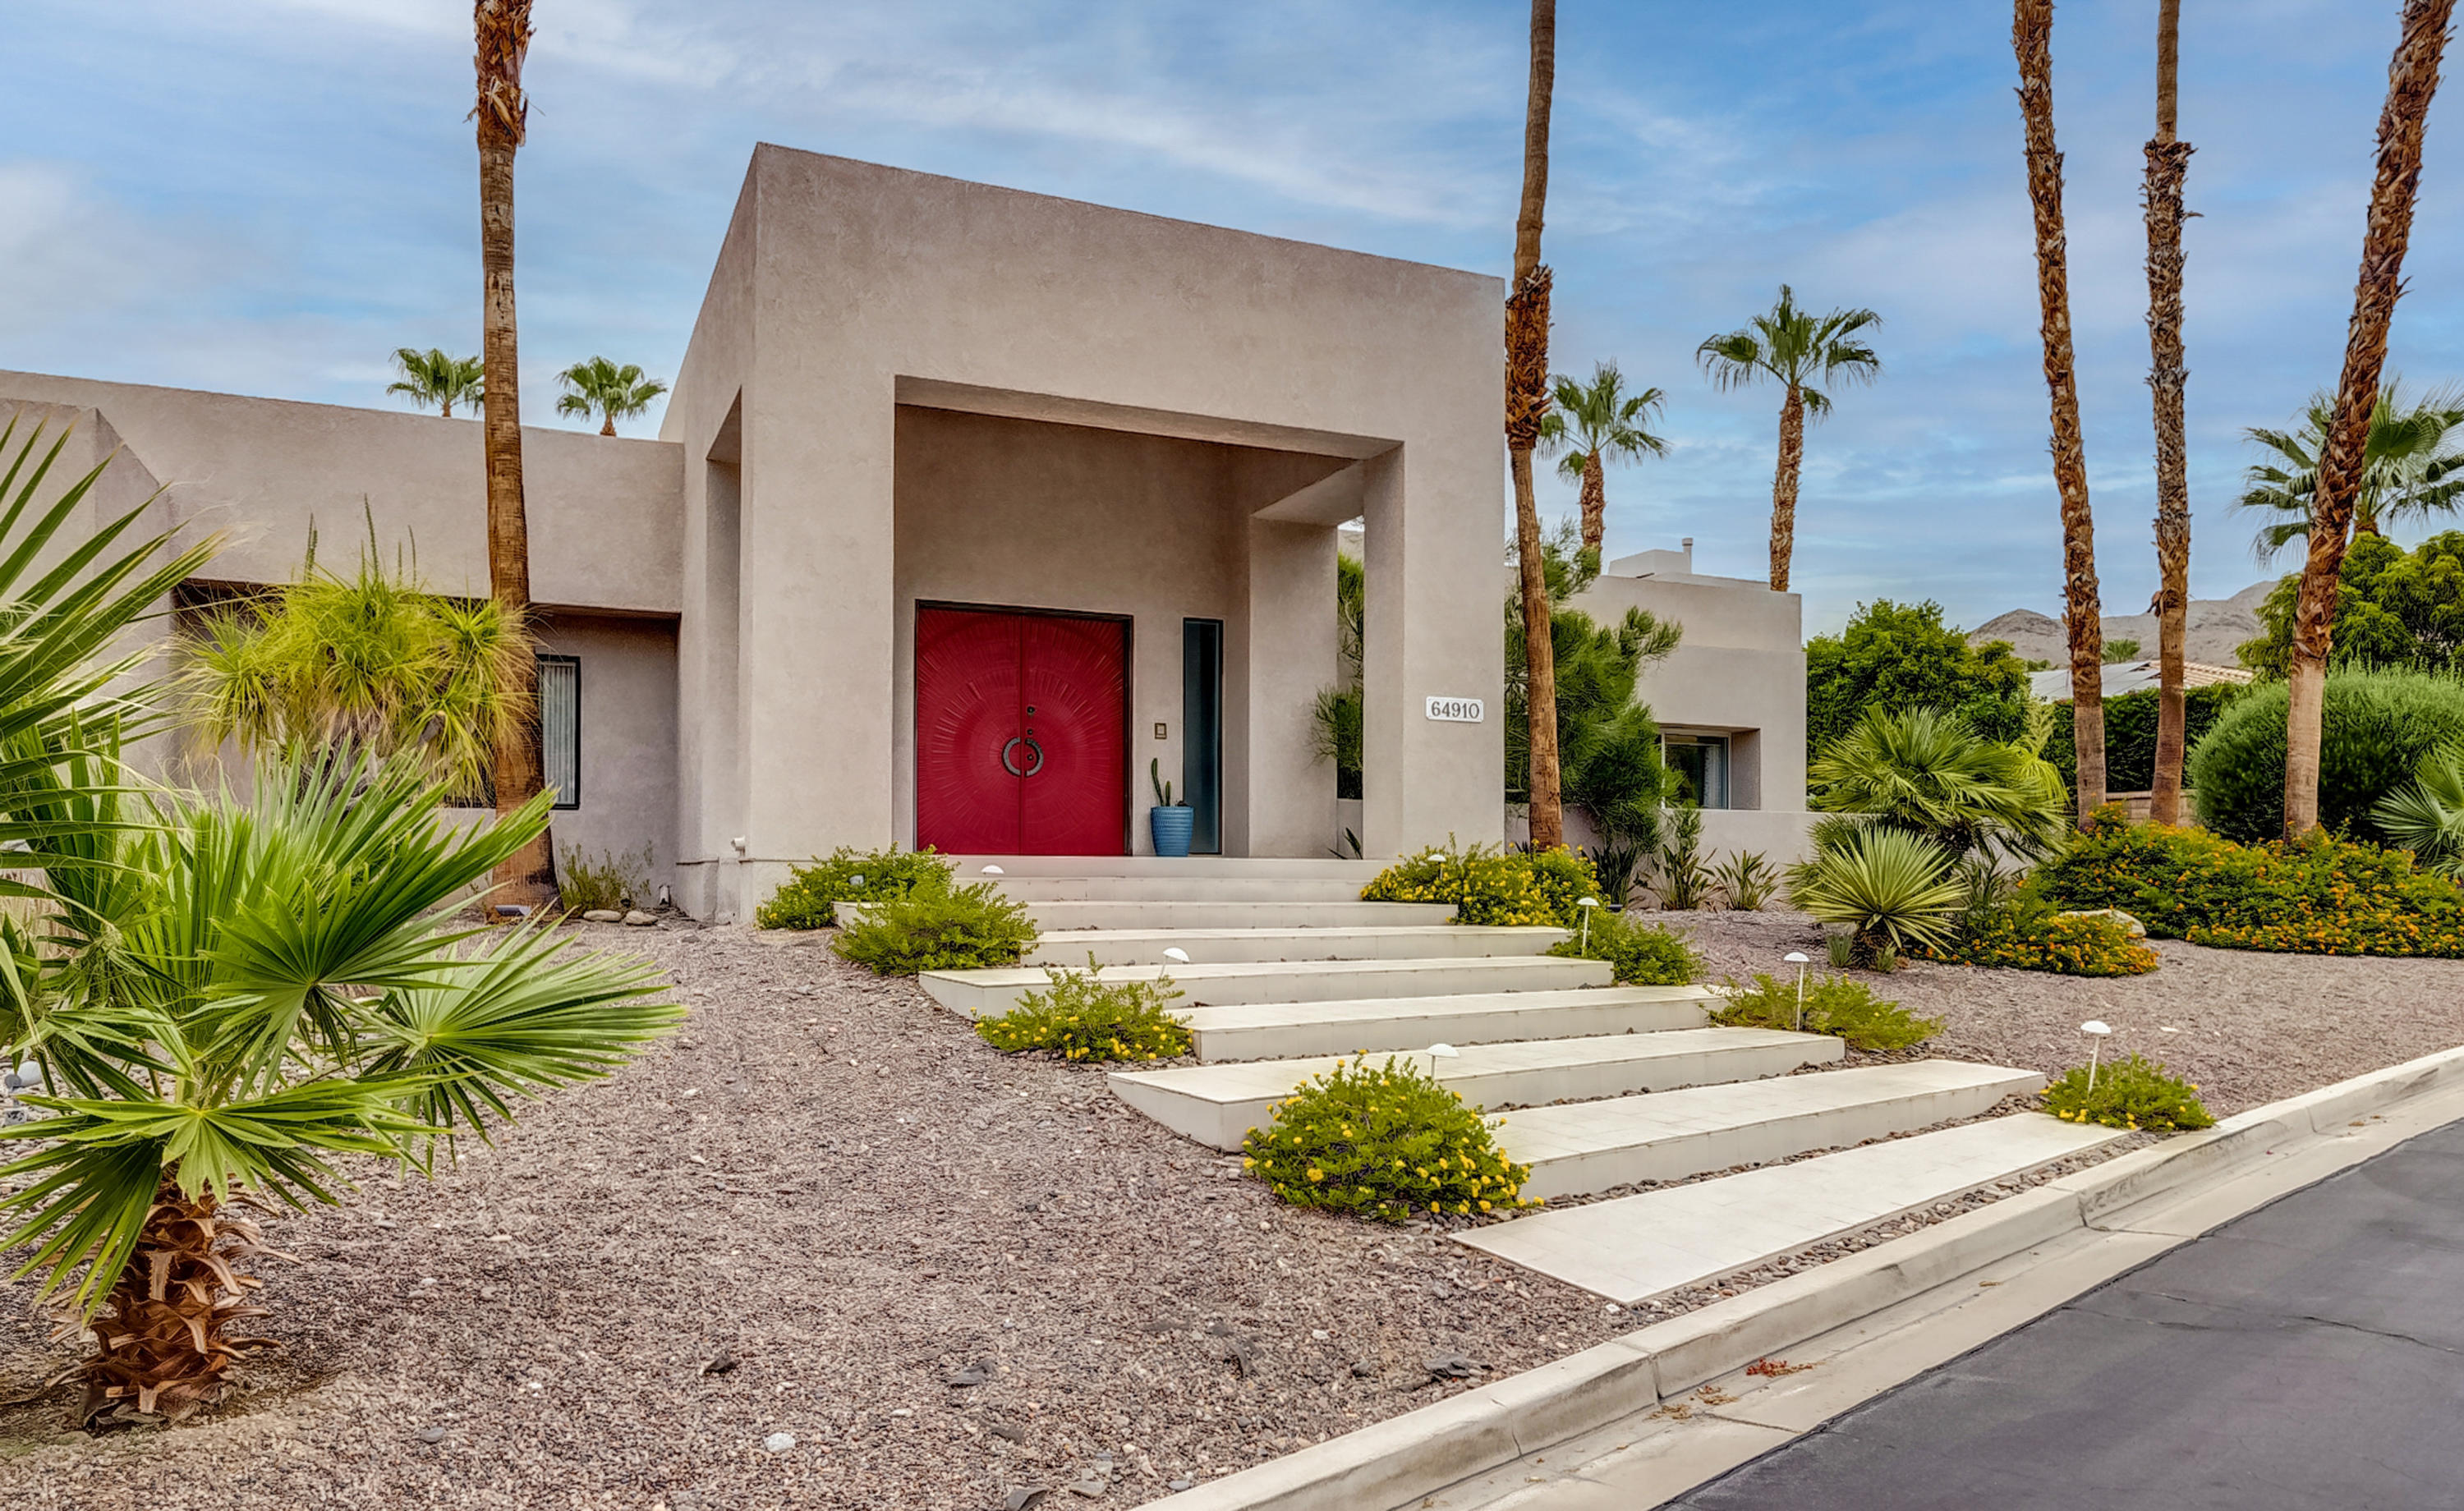 Photo of 64910 Montevideo Way, Palm Springs, CA 92264